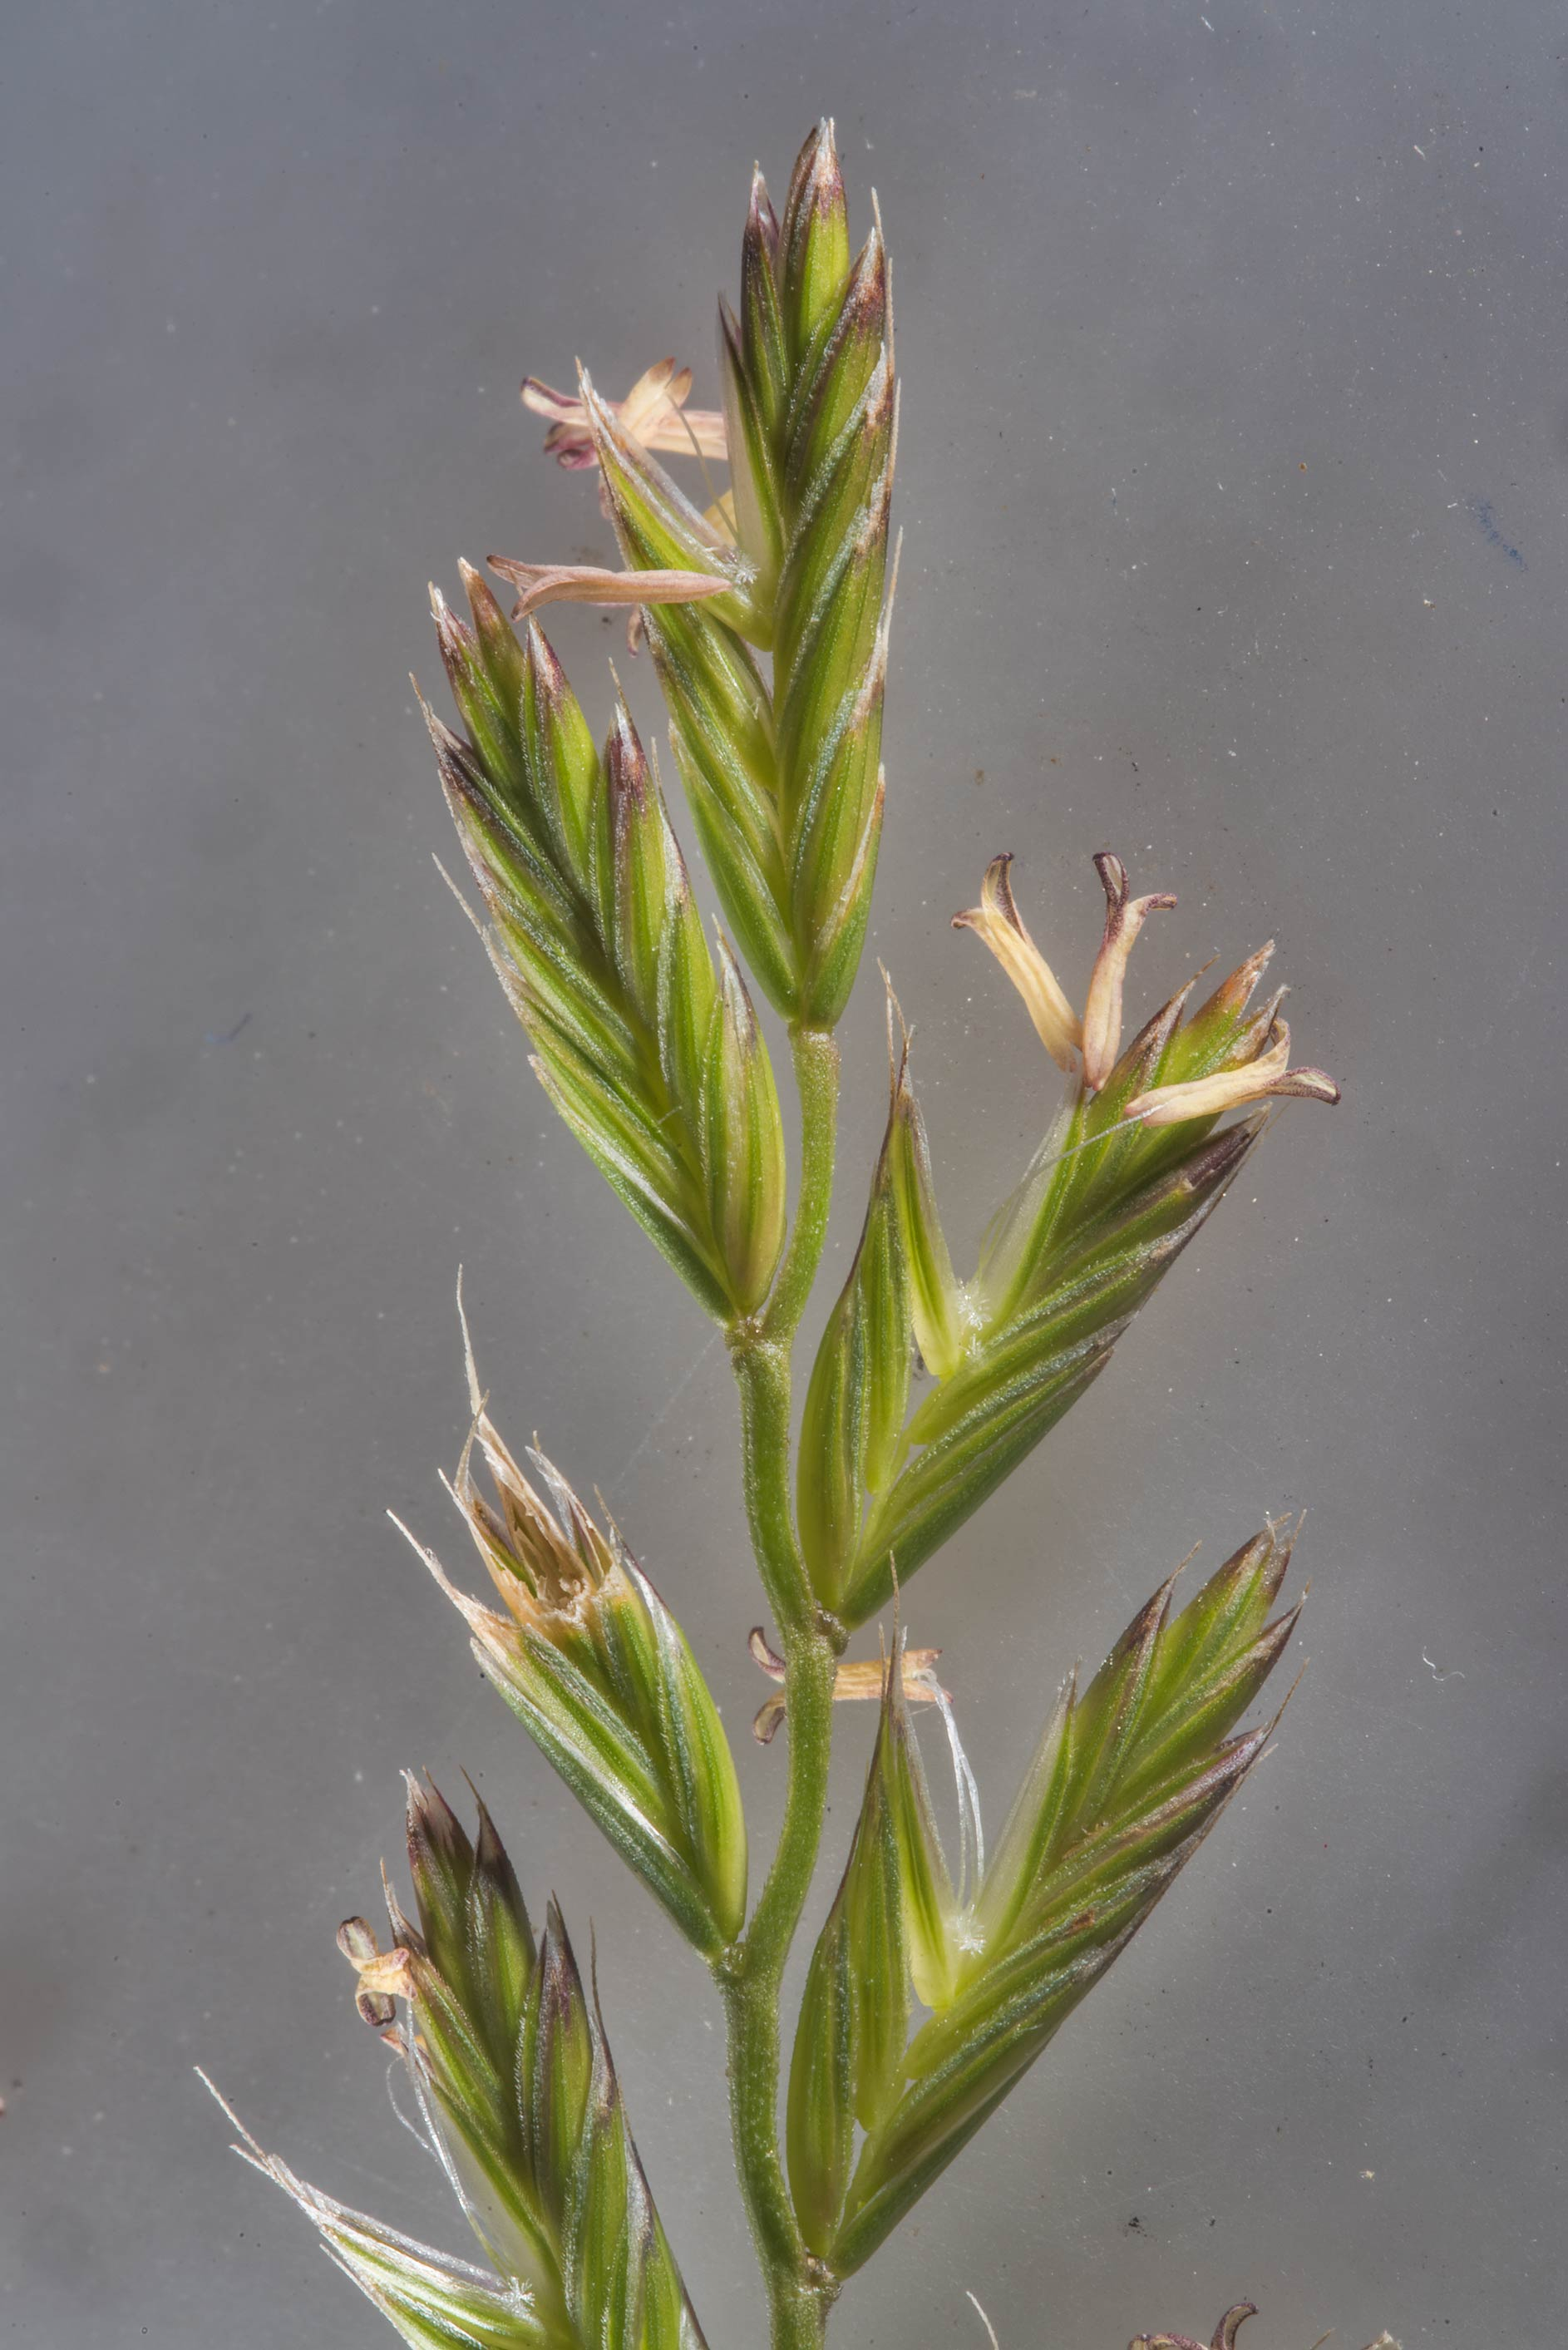 Spikelet of perennial ryegrass (Lolium perenne...State Historic Site. Washington, Texas